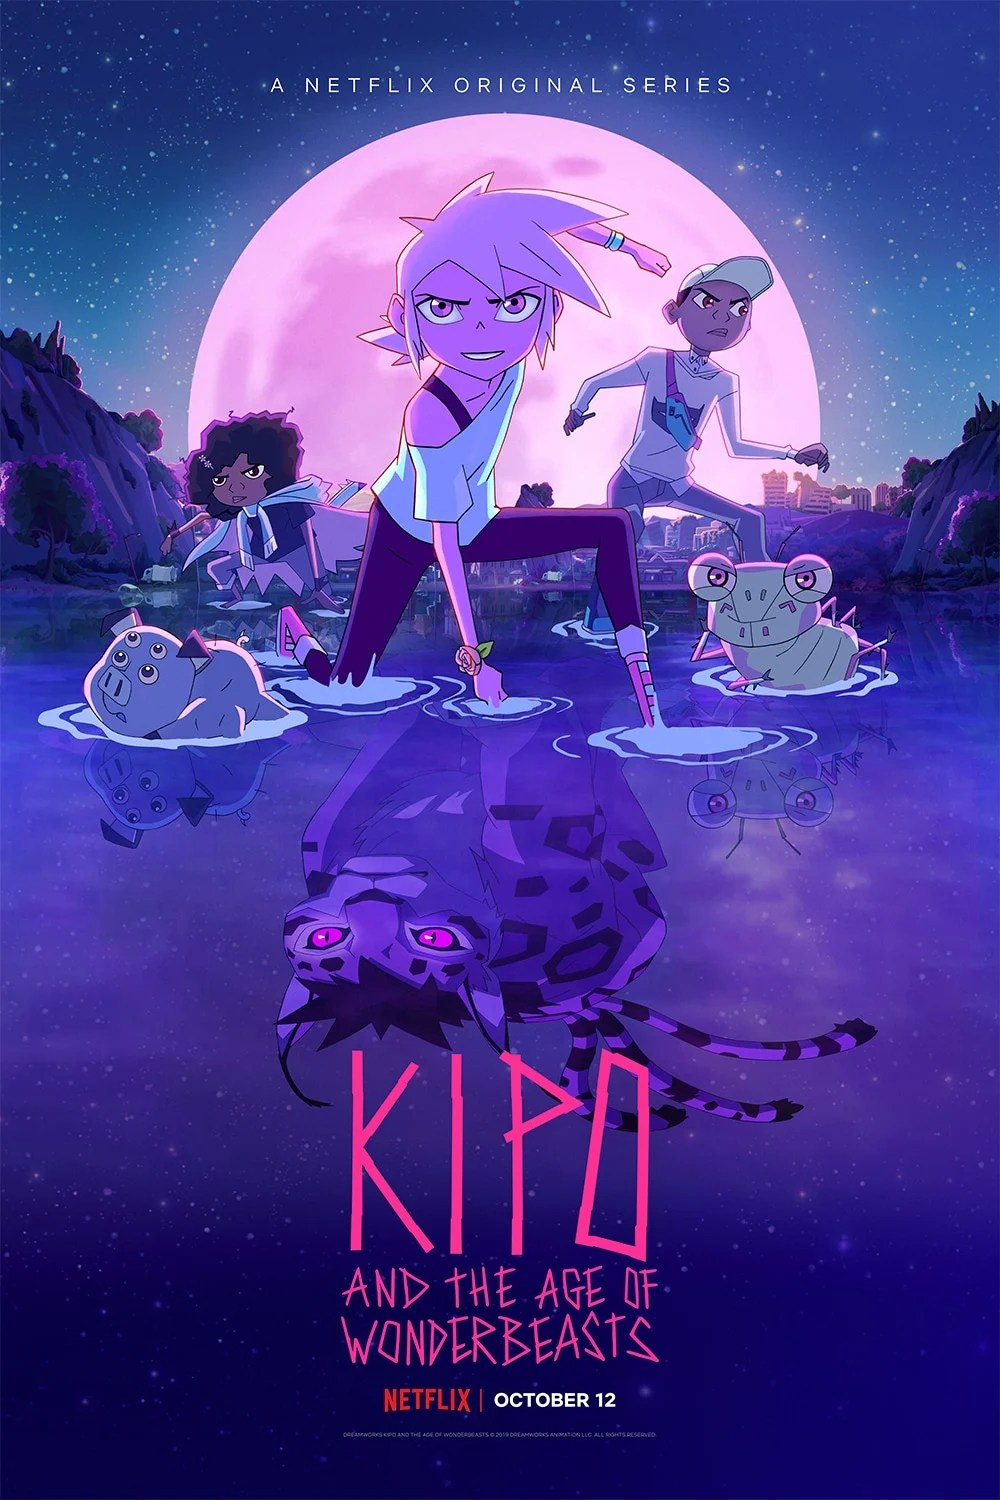 Kipo and The Age of Wonderbeasts Final Season Poster. DreamWorks Kipo and The Age of Wonderbeasts will return to Netflix on October 12 for its third and final season of the whimsical and action-packed series. The fantastical series comes to an epic end with 10 episodes